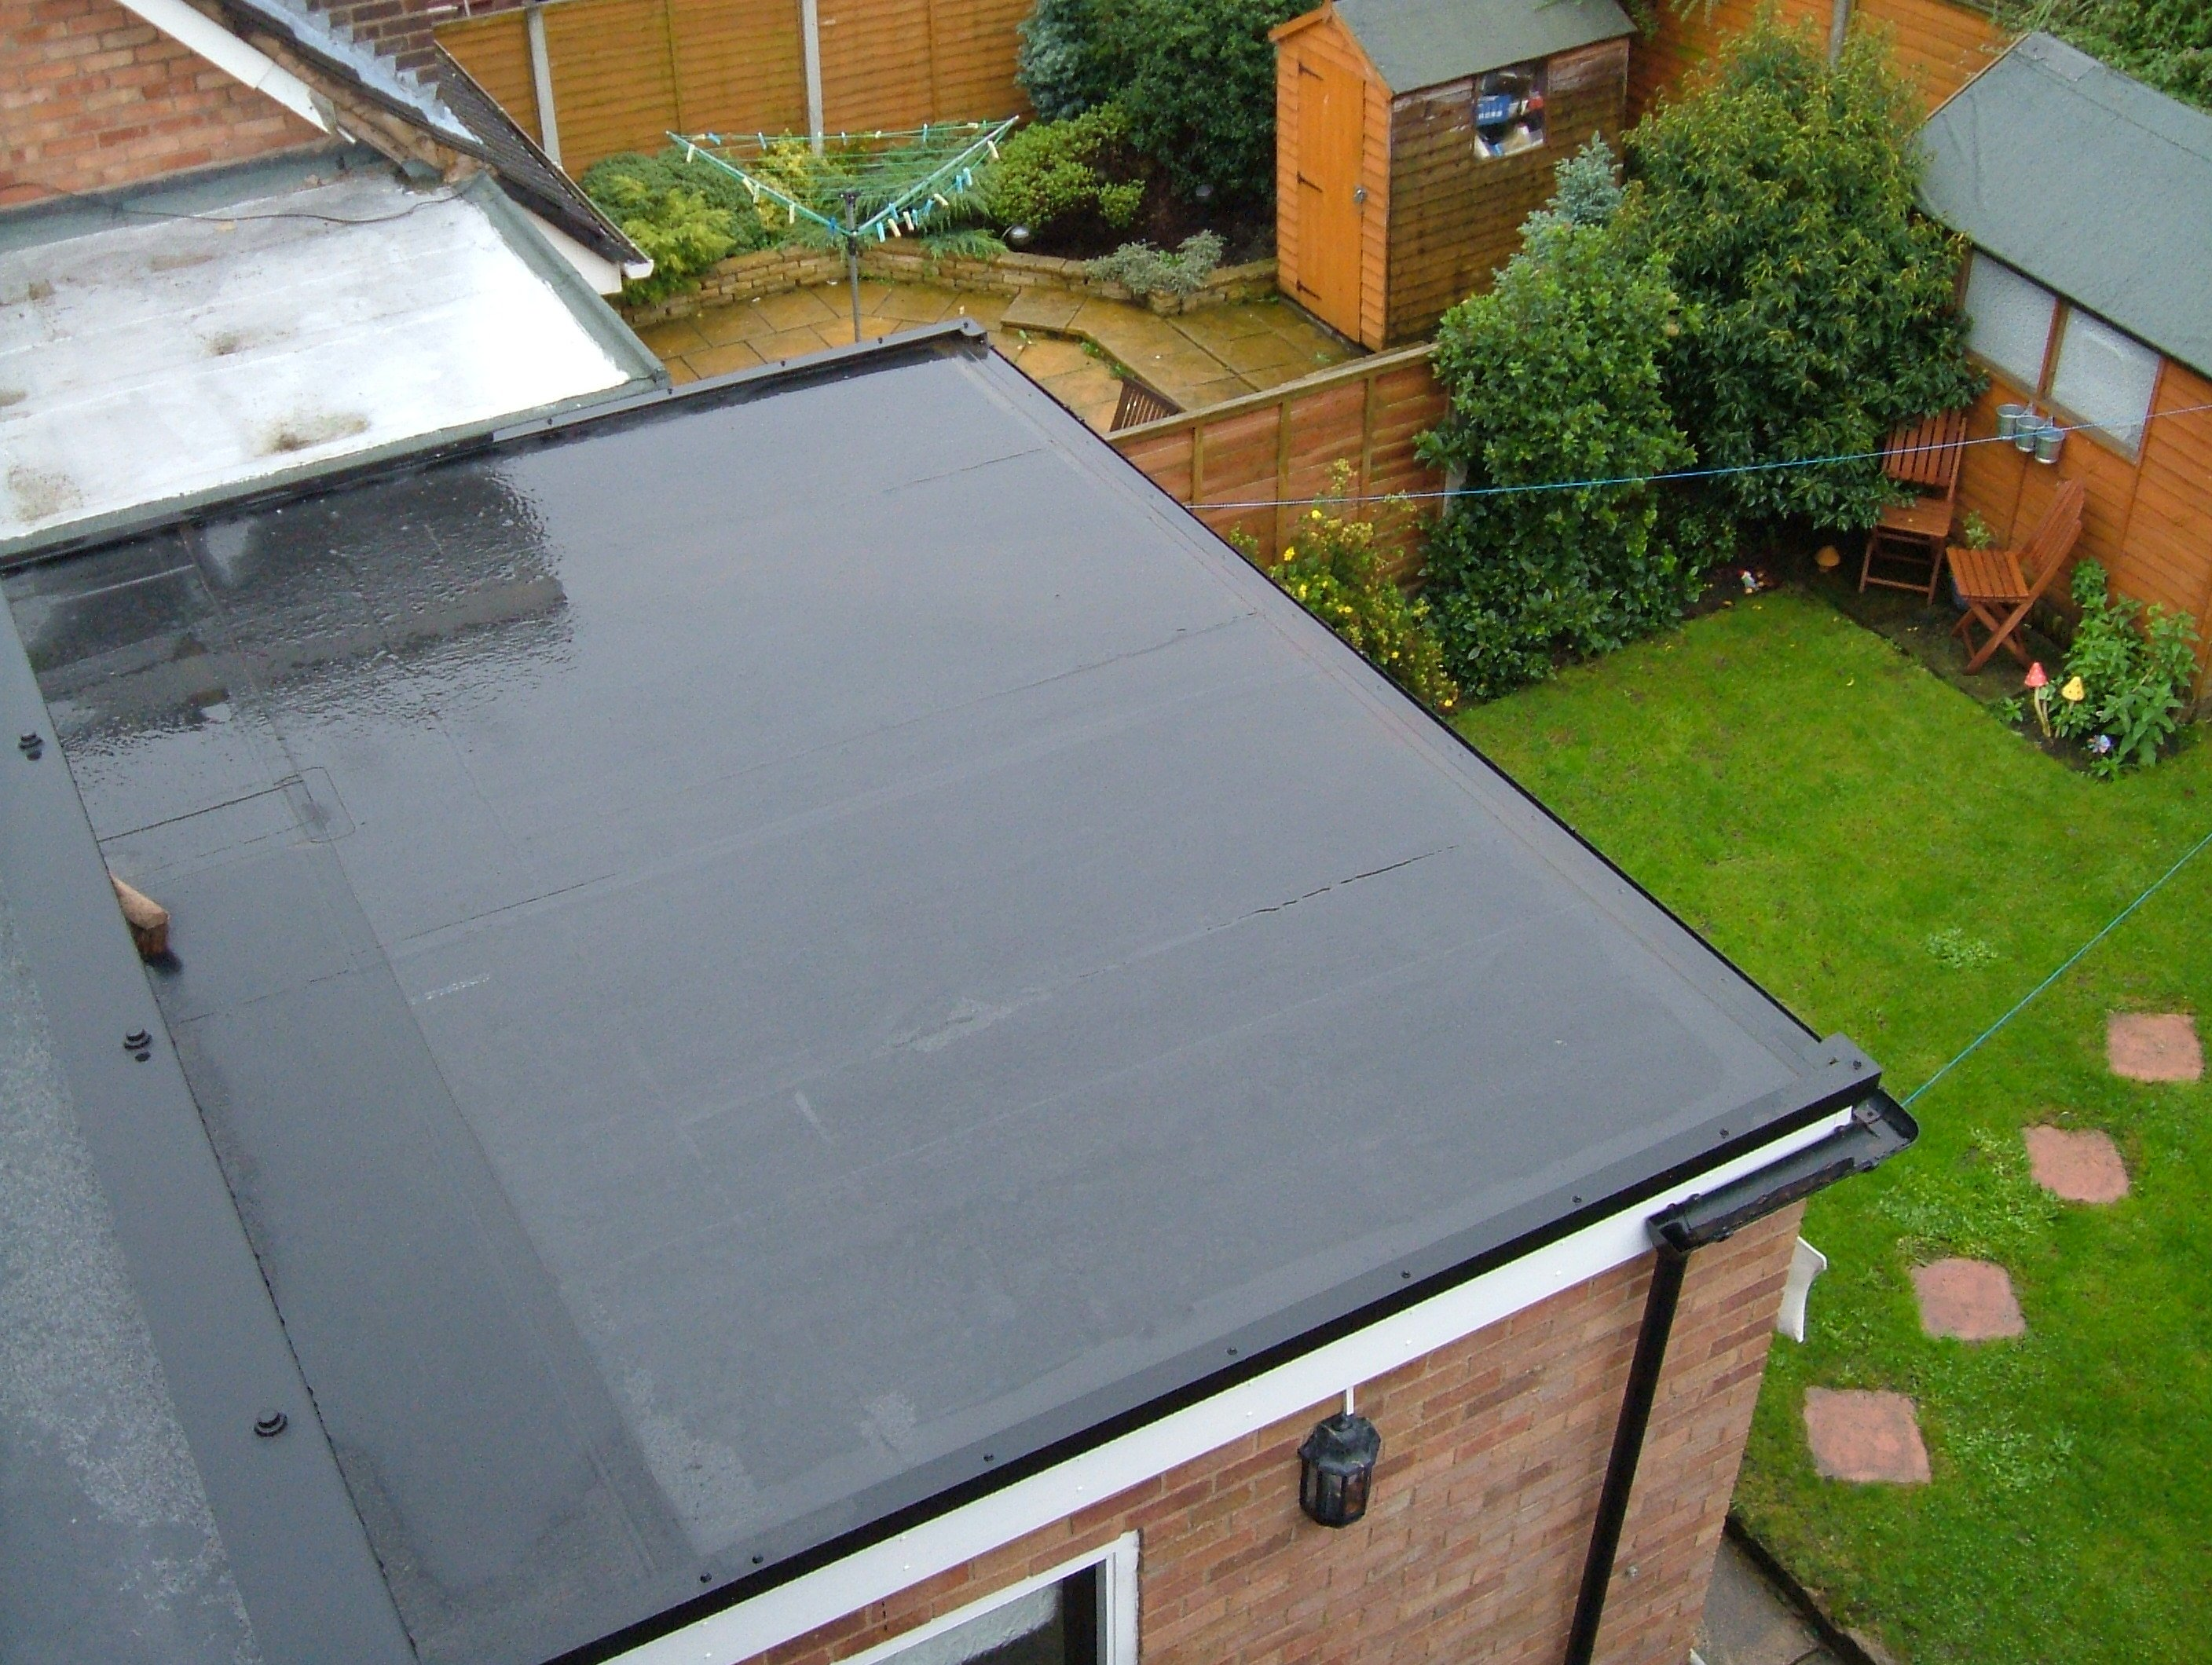 flat roof materials costs pvc vs tpo epdm plus pros cons